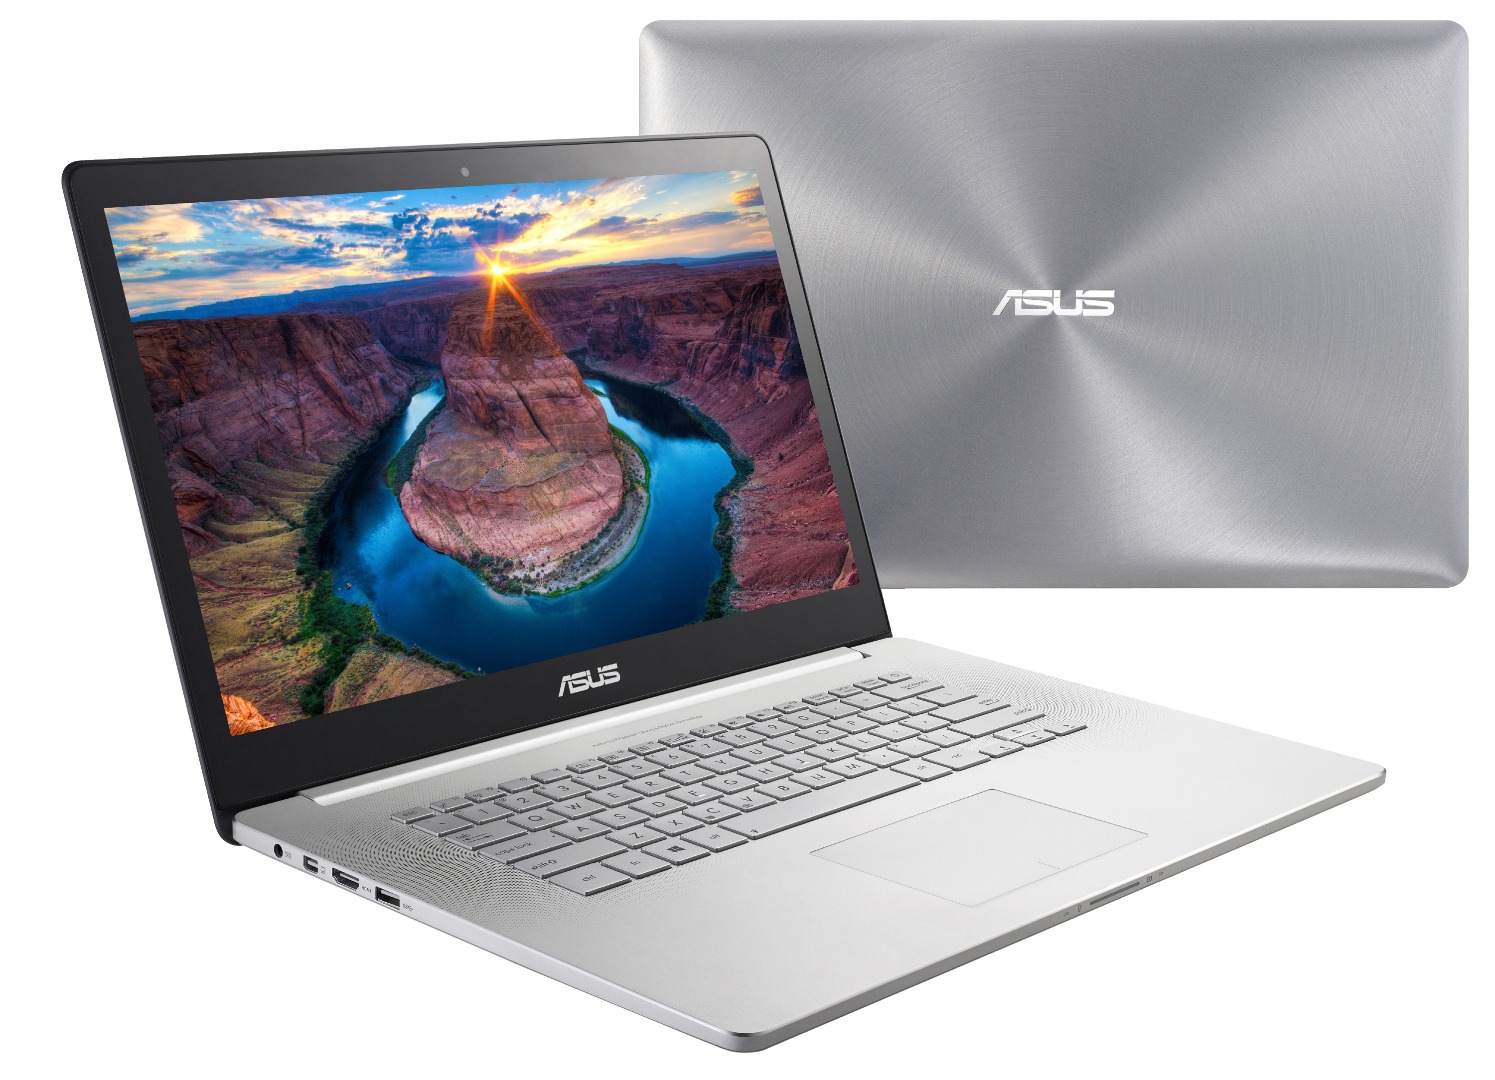 Asus Zenbook vs MacBook Pro 1